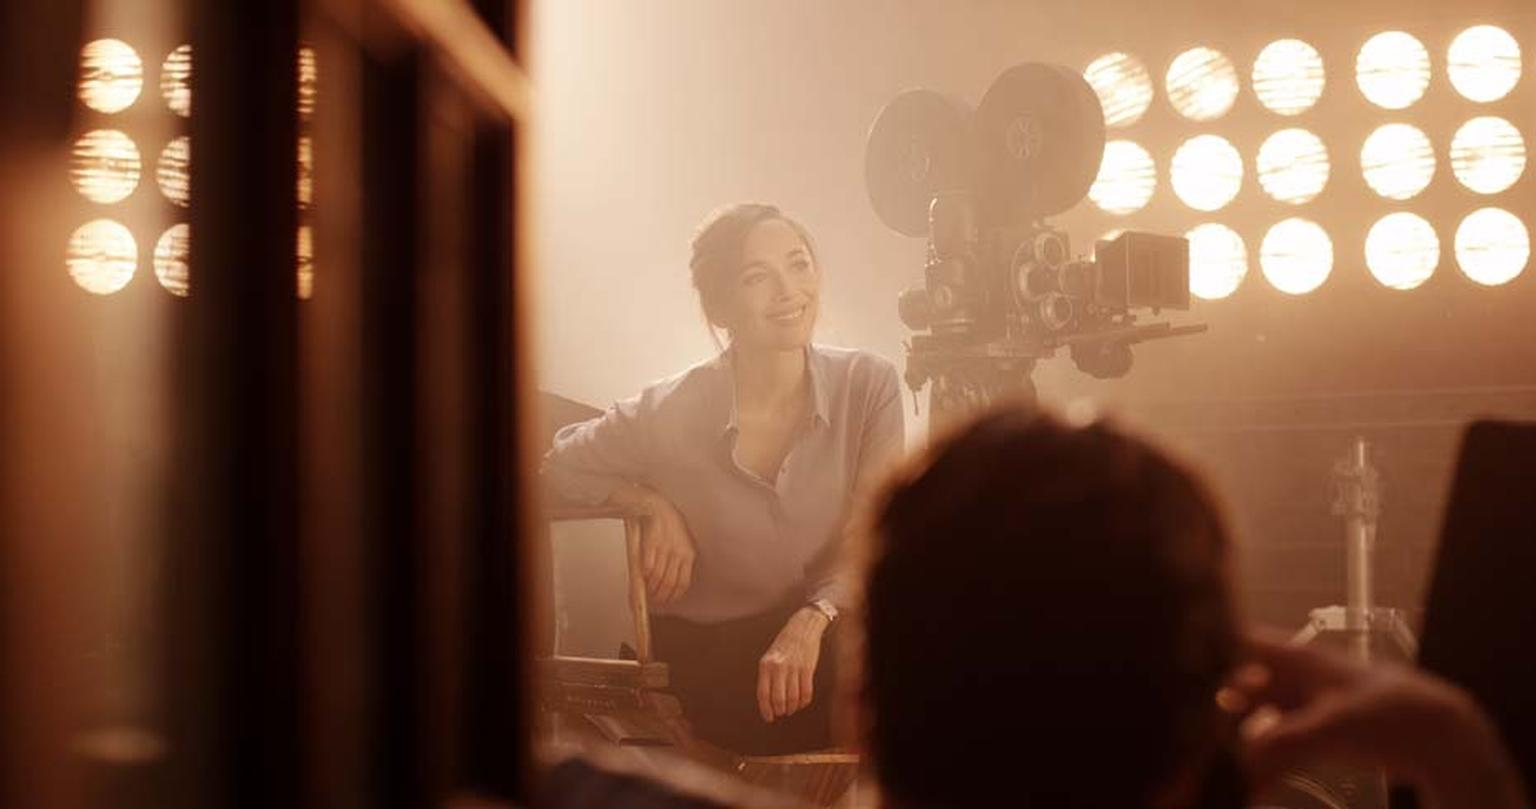 Carmen Chaplin is captivated by a silent movie, possibly starring her grandfather Charlie Chaplin, surrounded by film equipment of his era and lit by the hazy light of studio spotlights during the shoot for Jaeger-LeCoultre's new Open a Whole New World ad